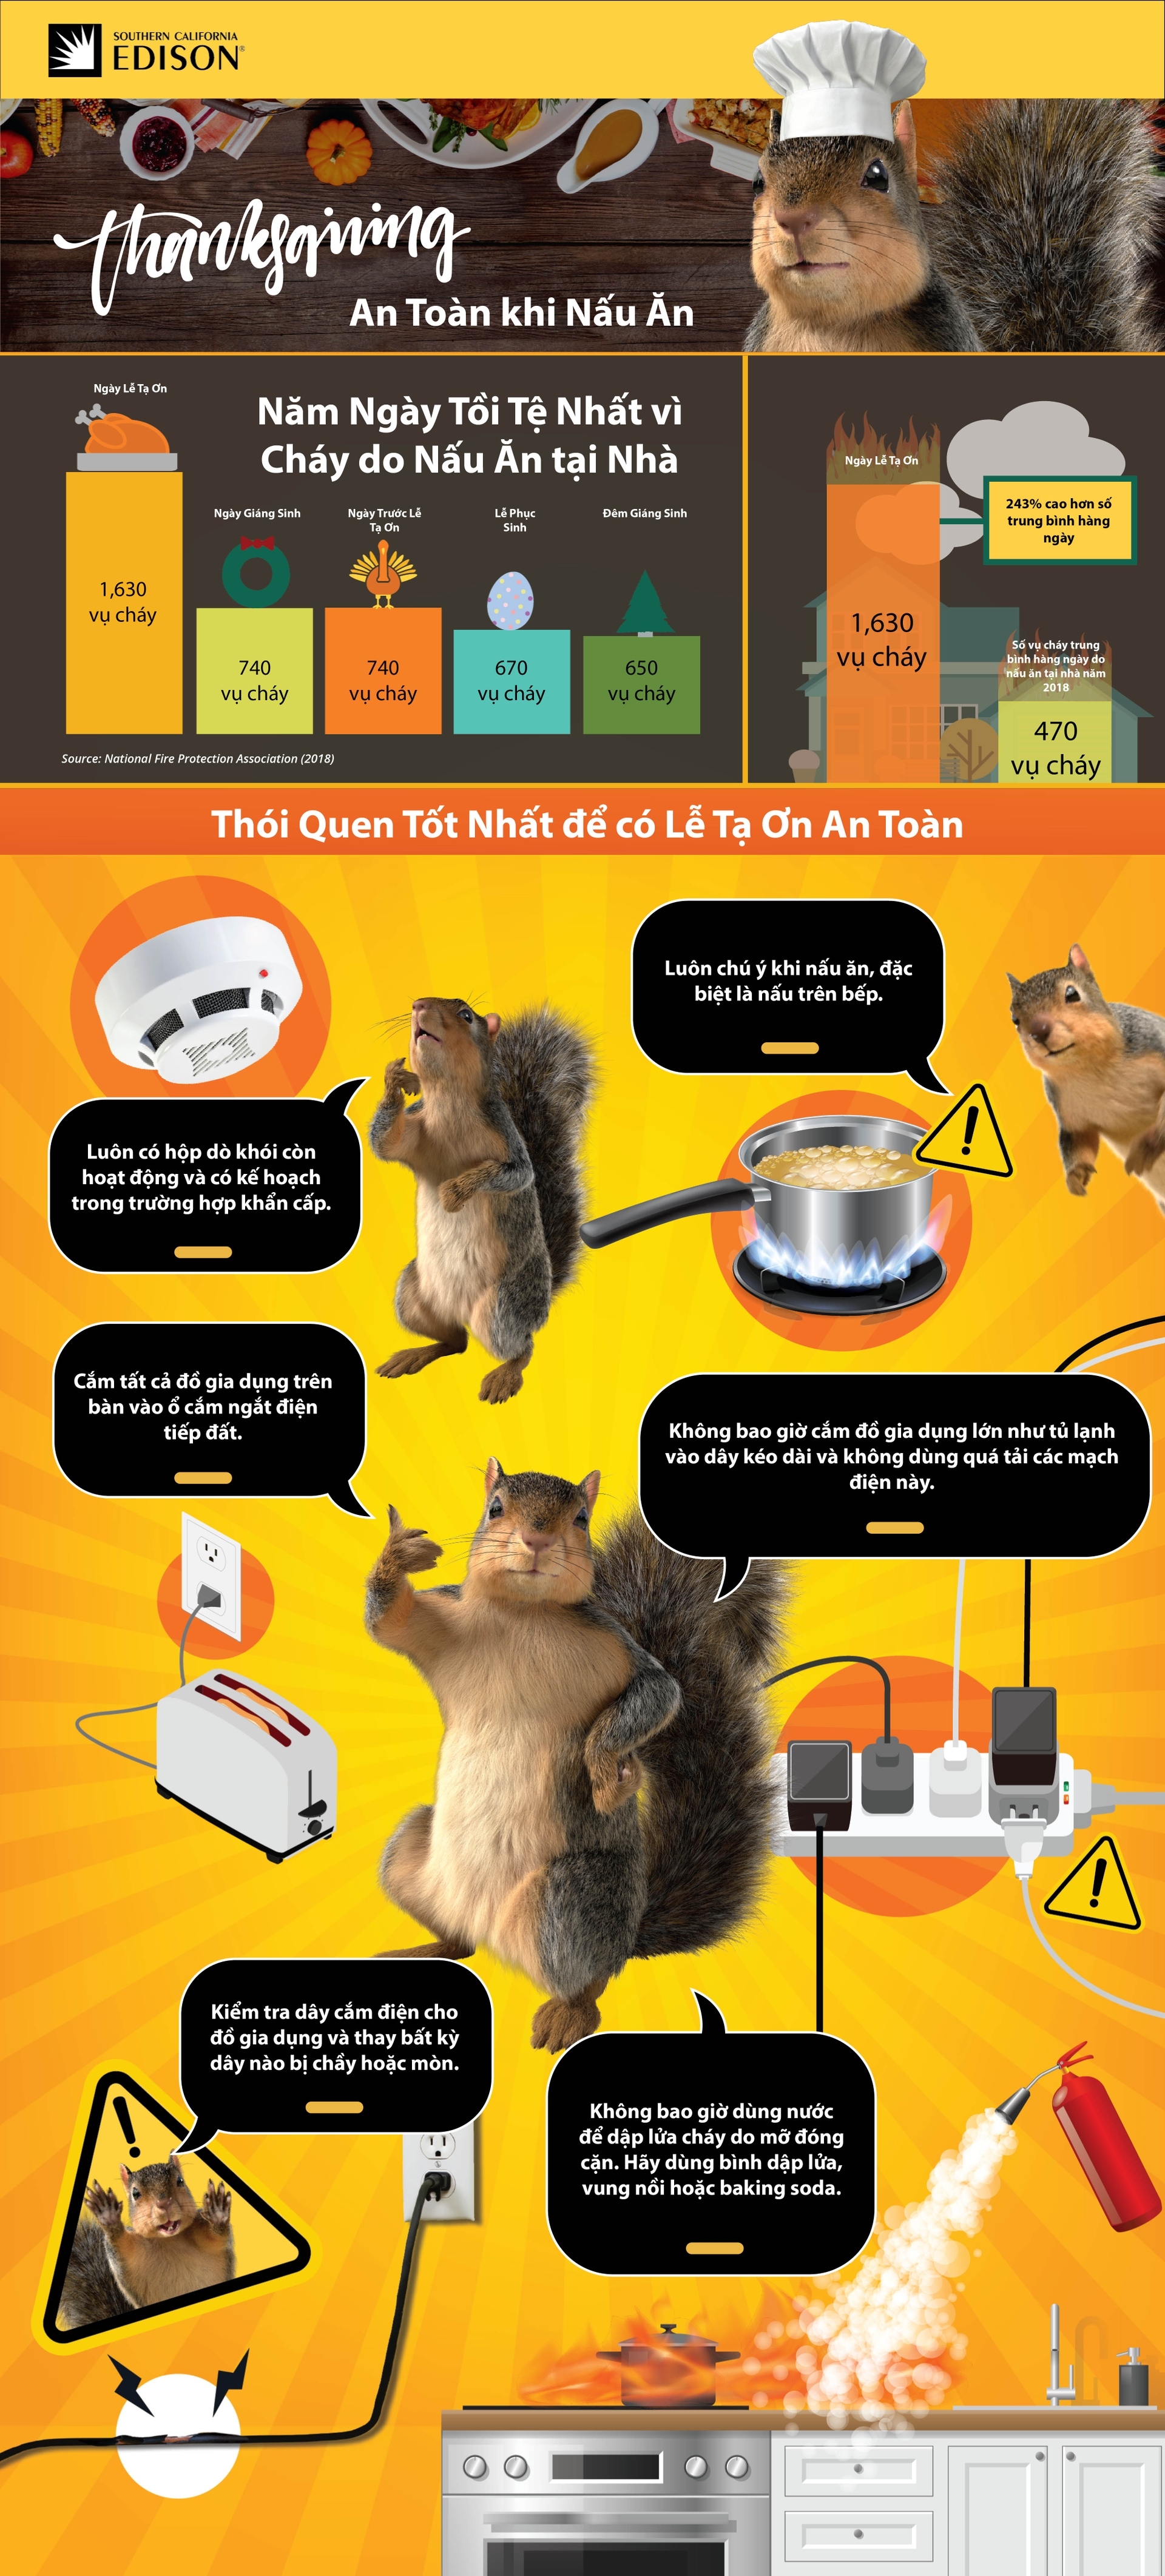 Thanksgiving_Cooking_Safety_VIE